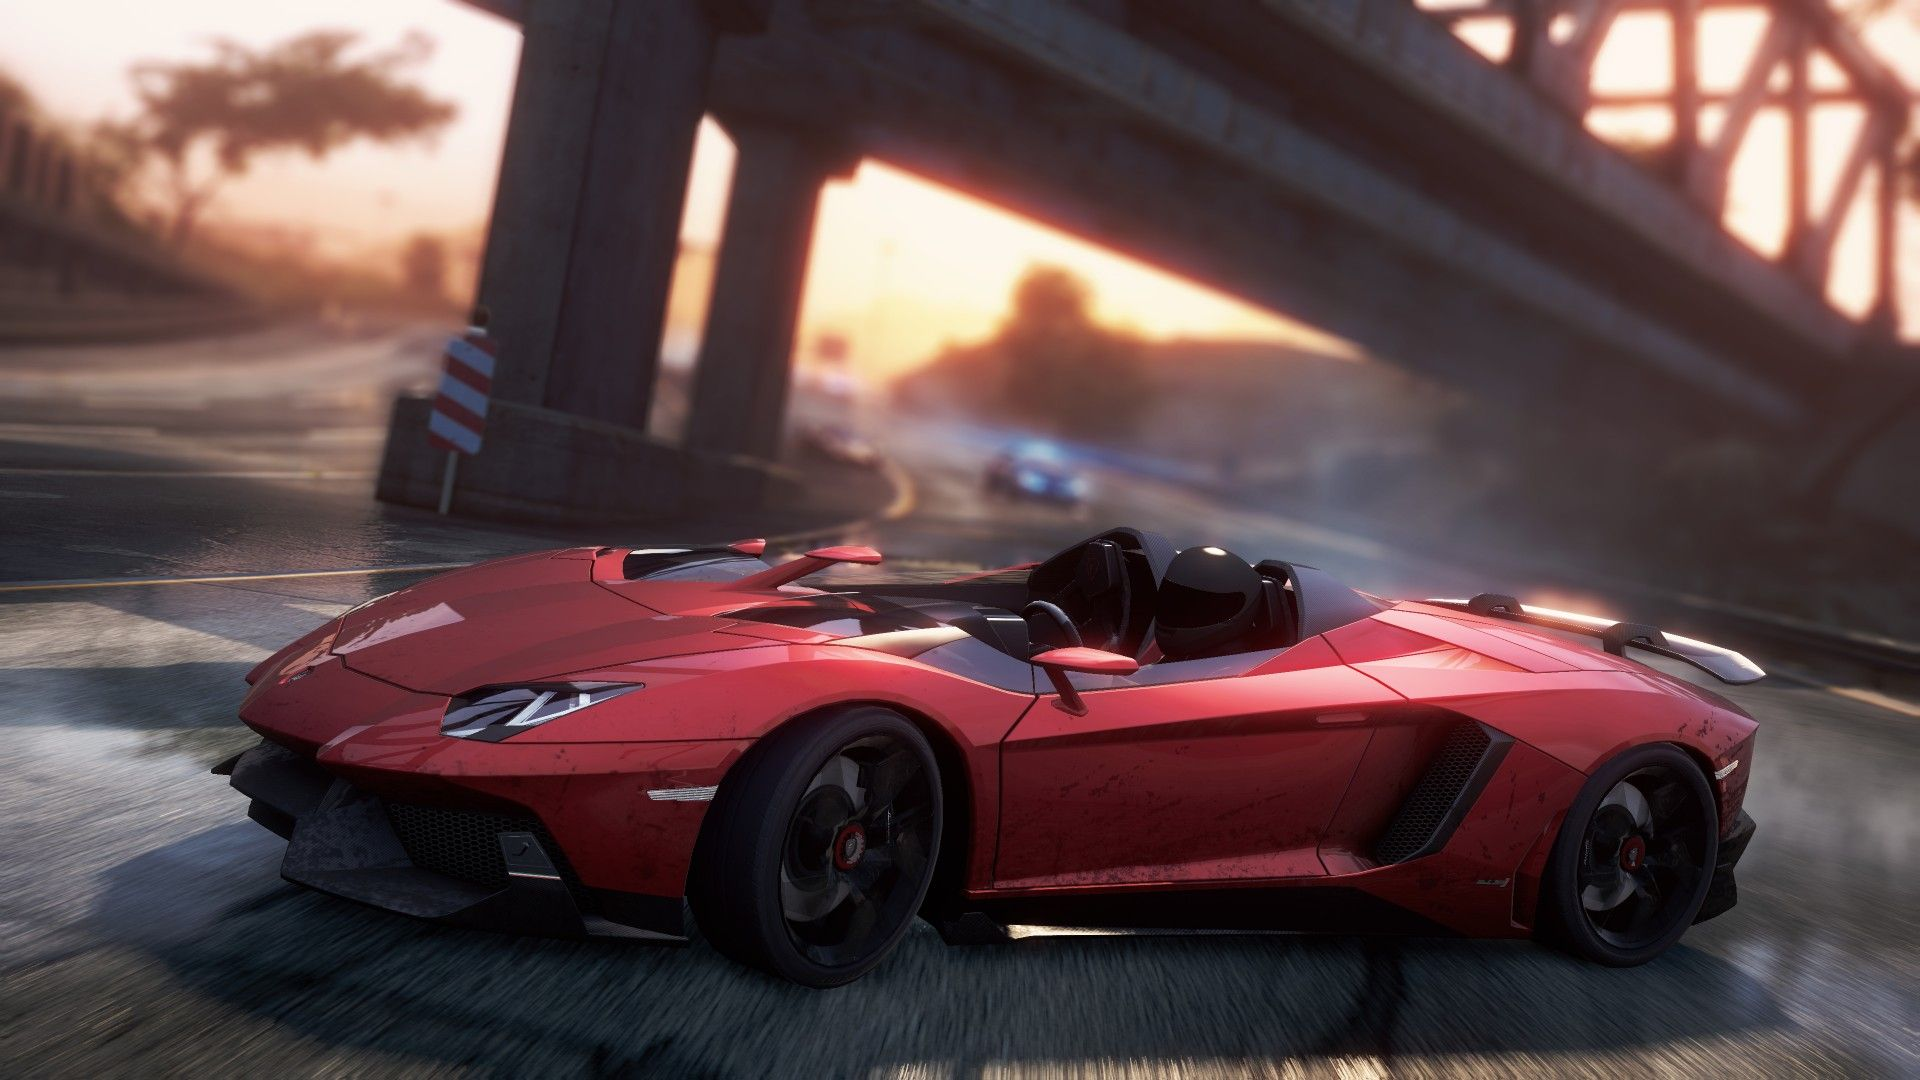 need for speed most wanted hd wallpapers i have a pc | wallpapers